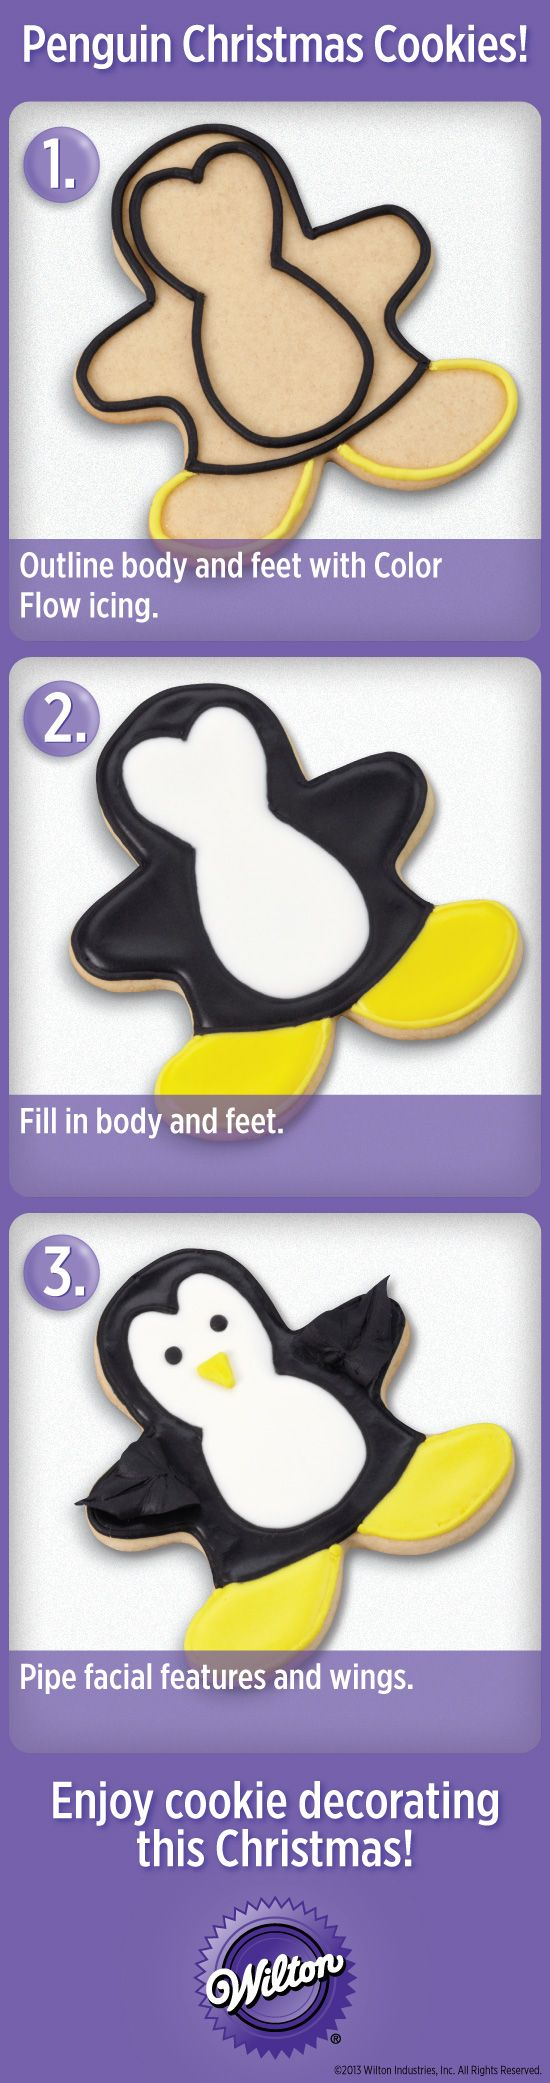 Turn a Gingerbread Boy into a Penguin using Wilton's Gingerbread Boy Comfort Grip™ Cookie Cutter.